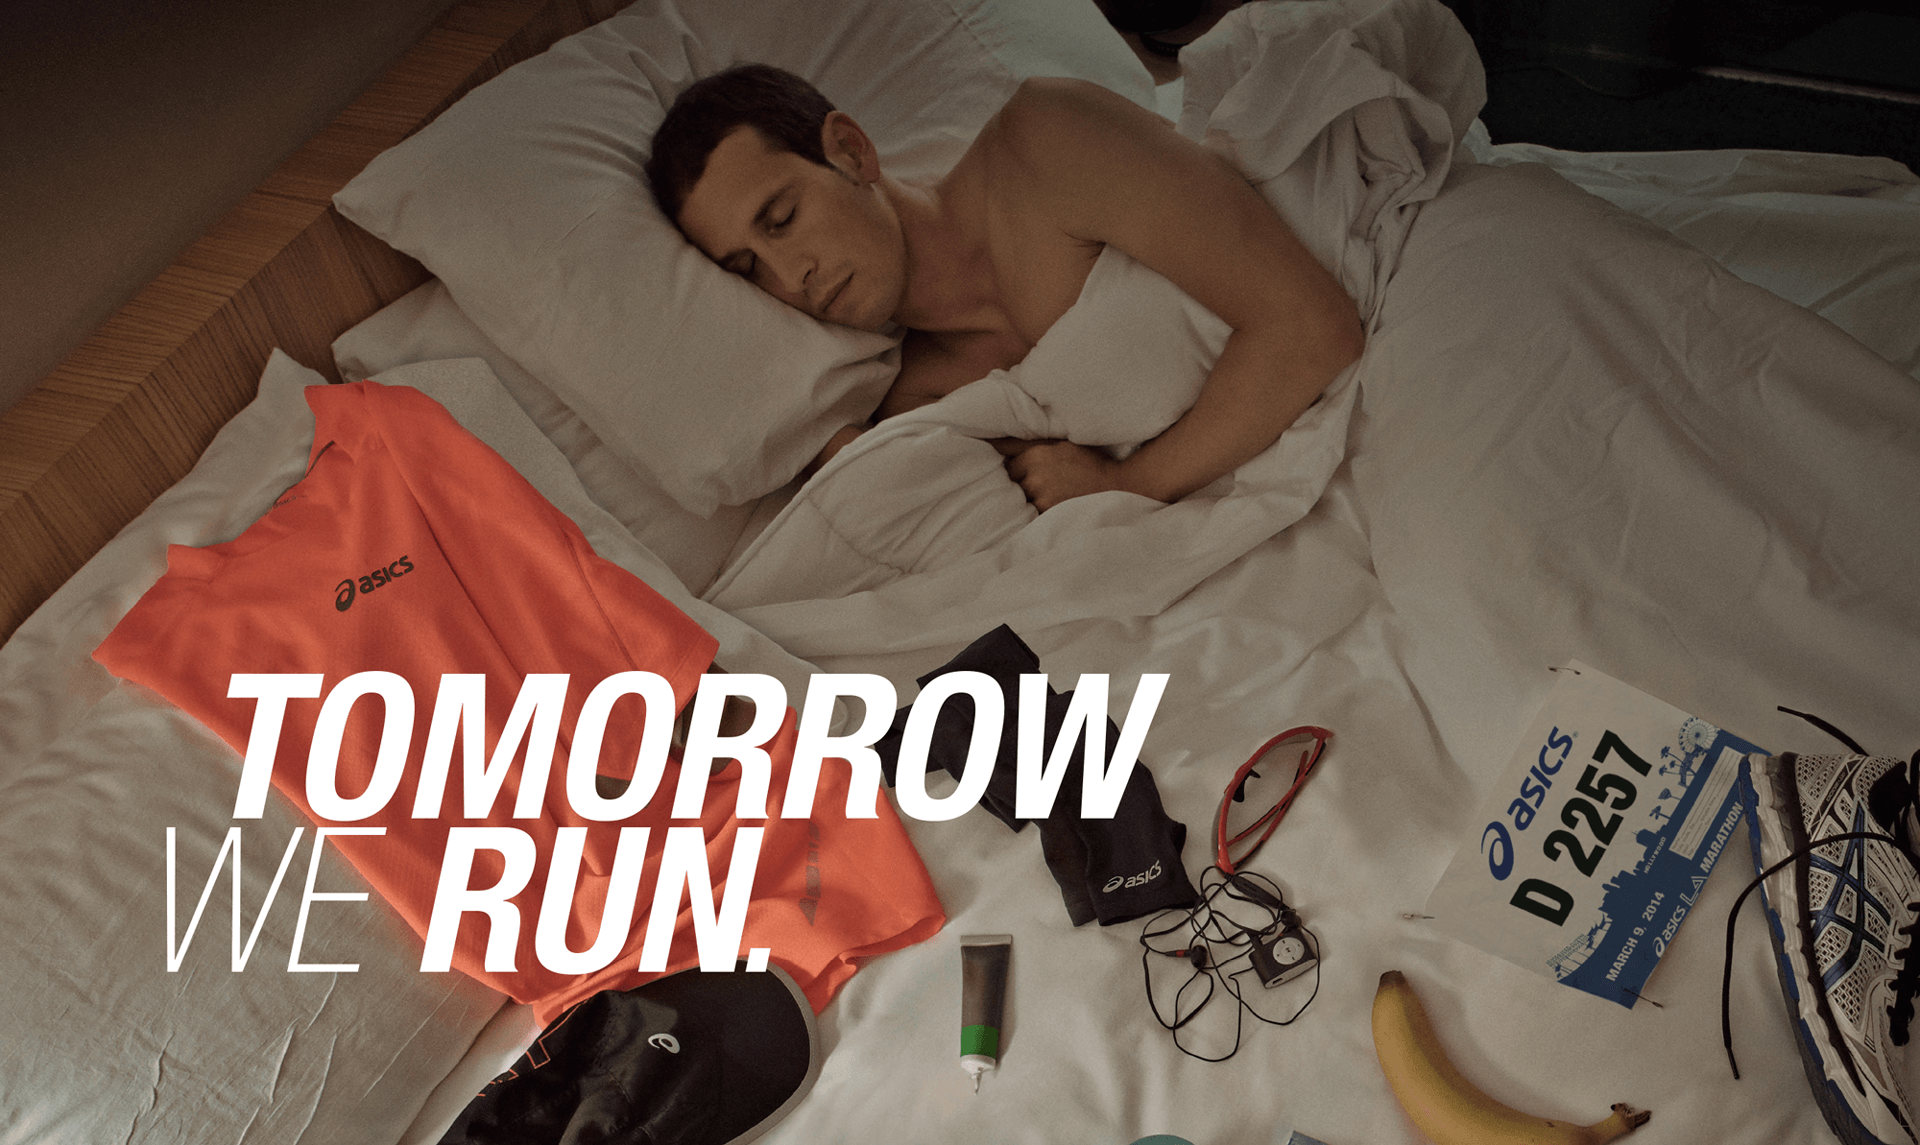 ASICS banner featuring male runner in bed with running gear